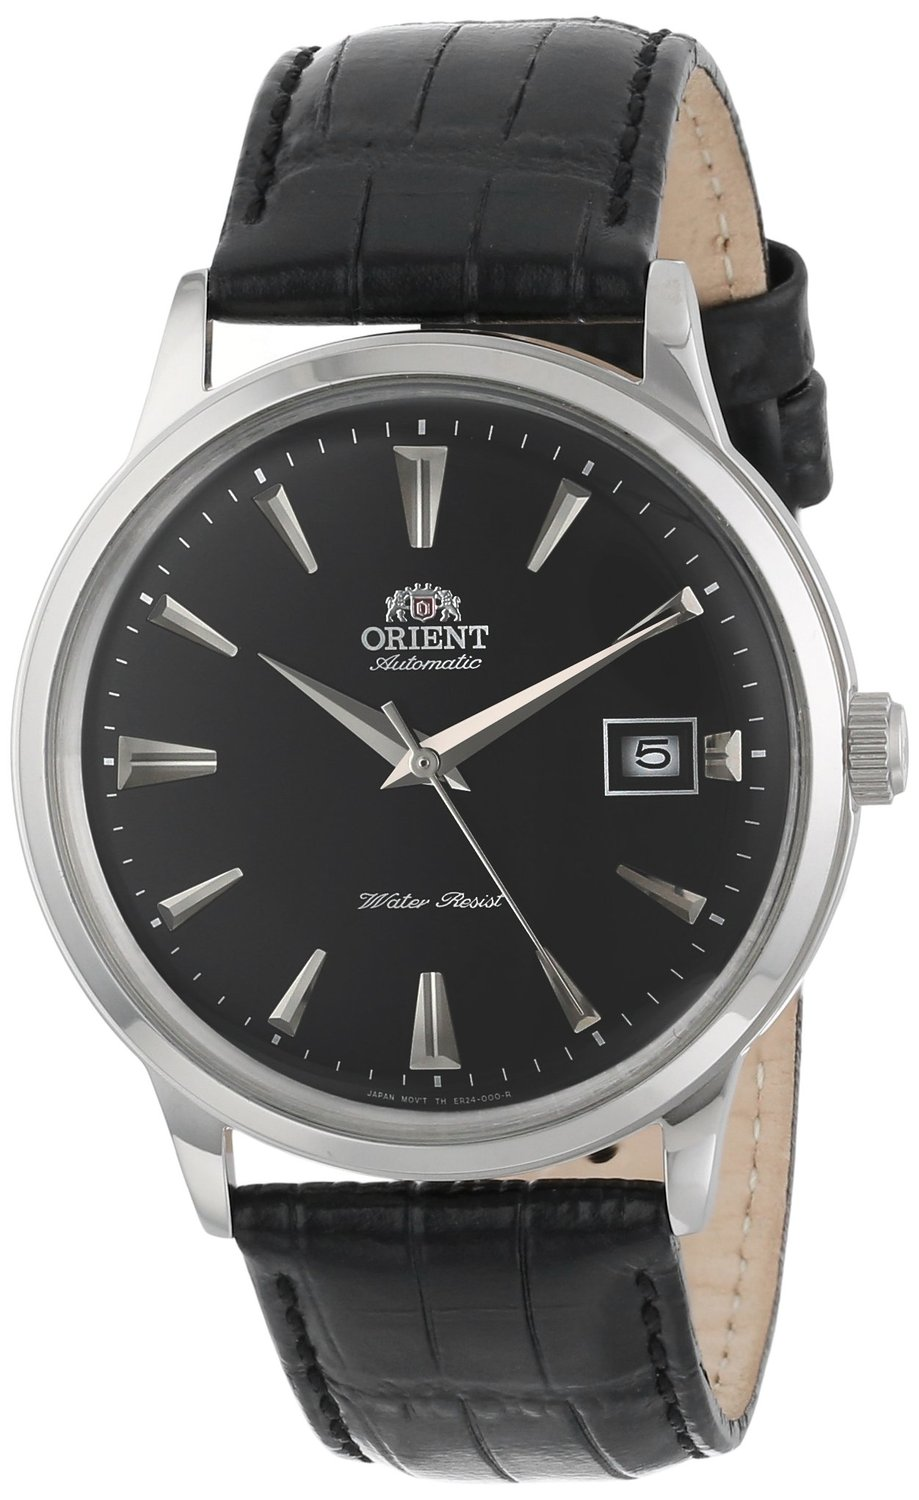 4b2a03495 Orient Bambino Watch Review | Automatic Watches For Men